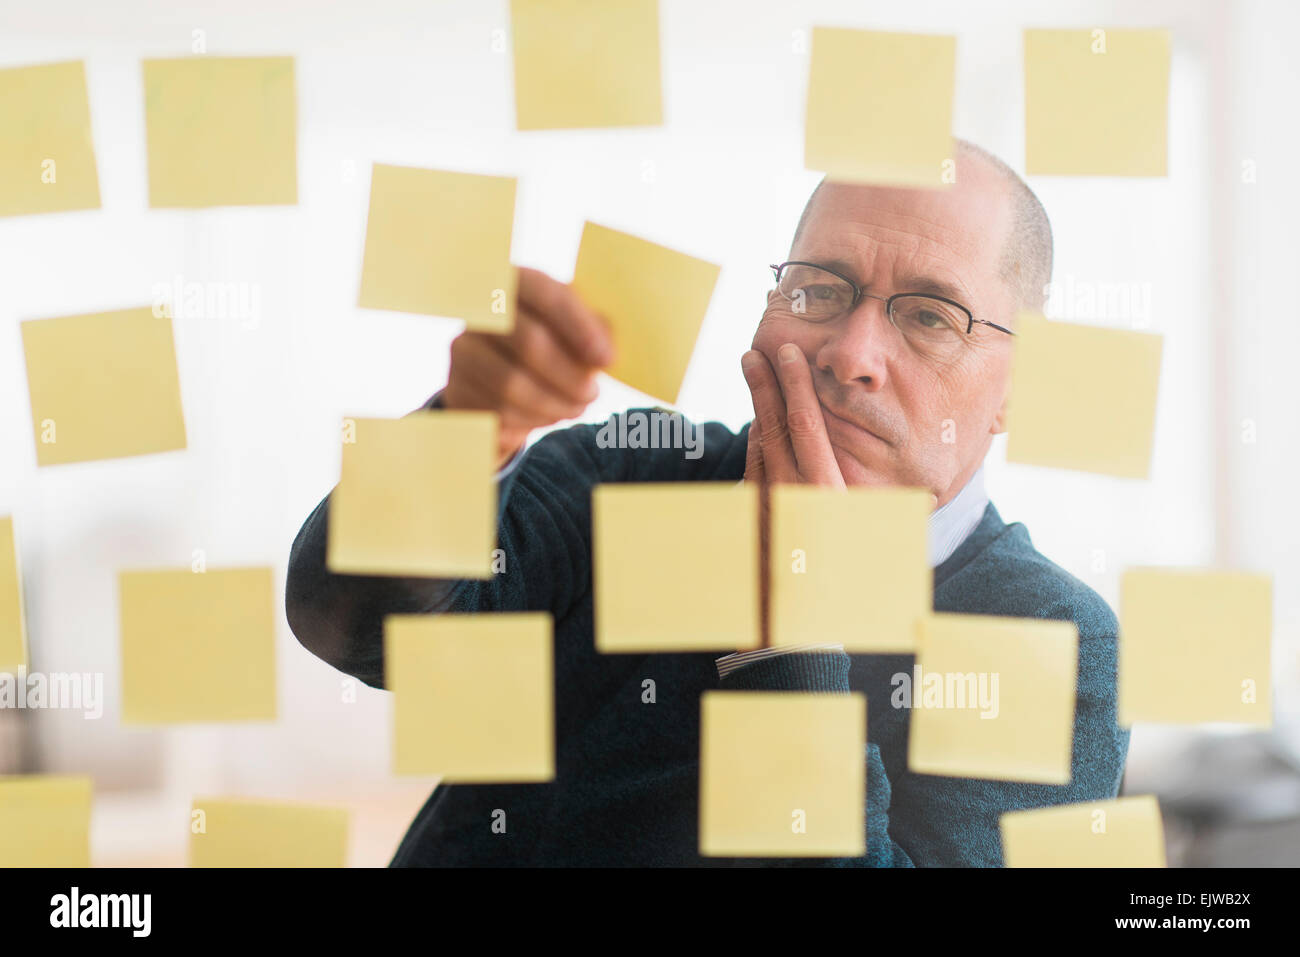 Businessman arranging adhesive notes on glass wall Stock Photo ...